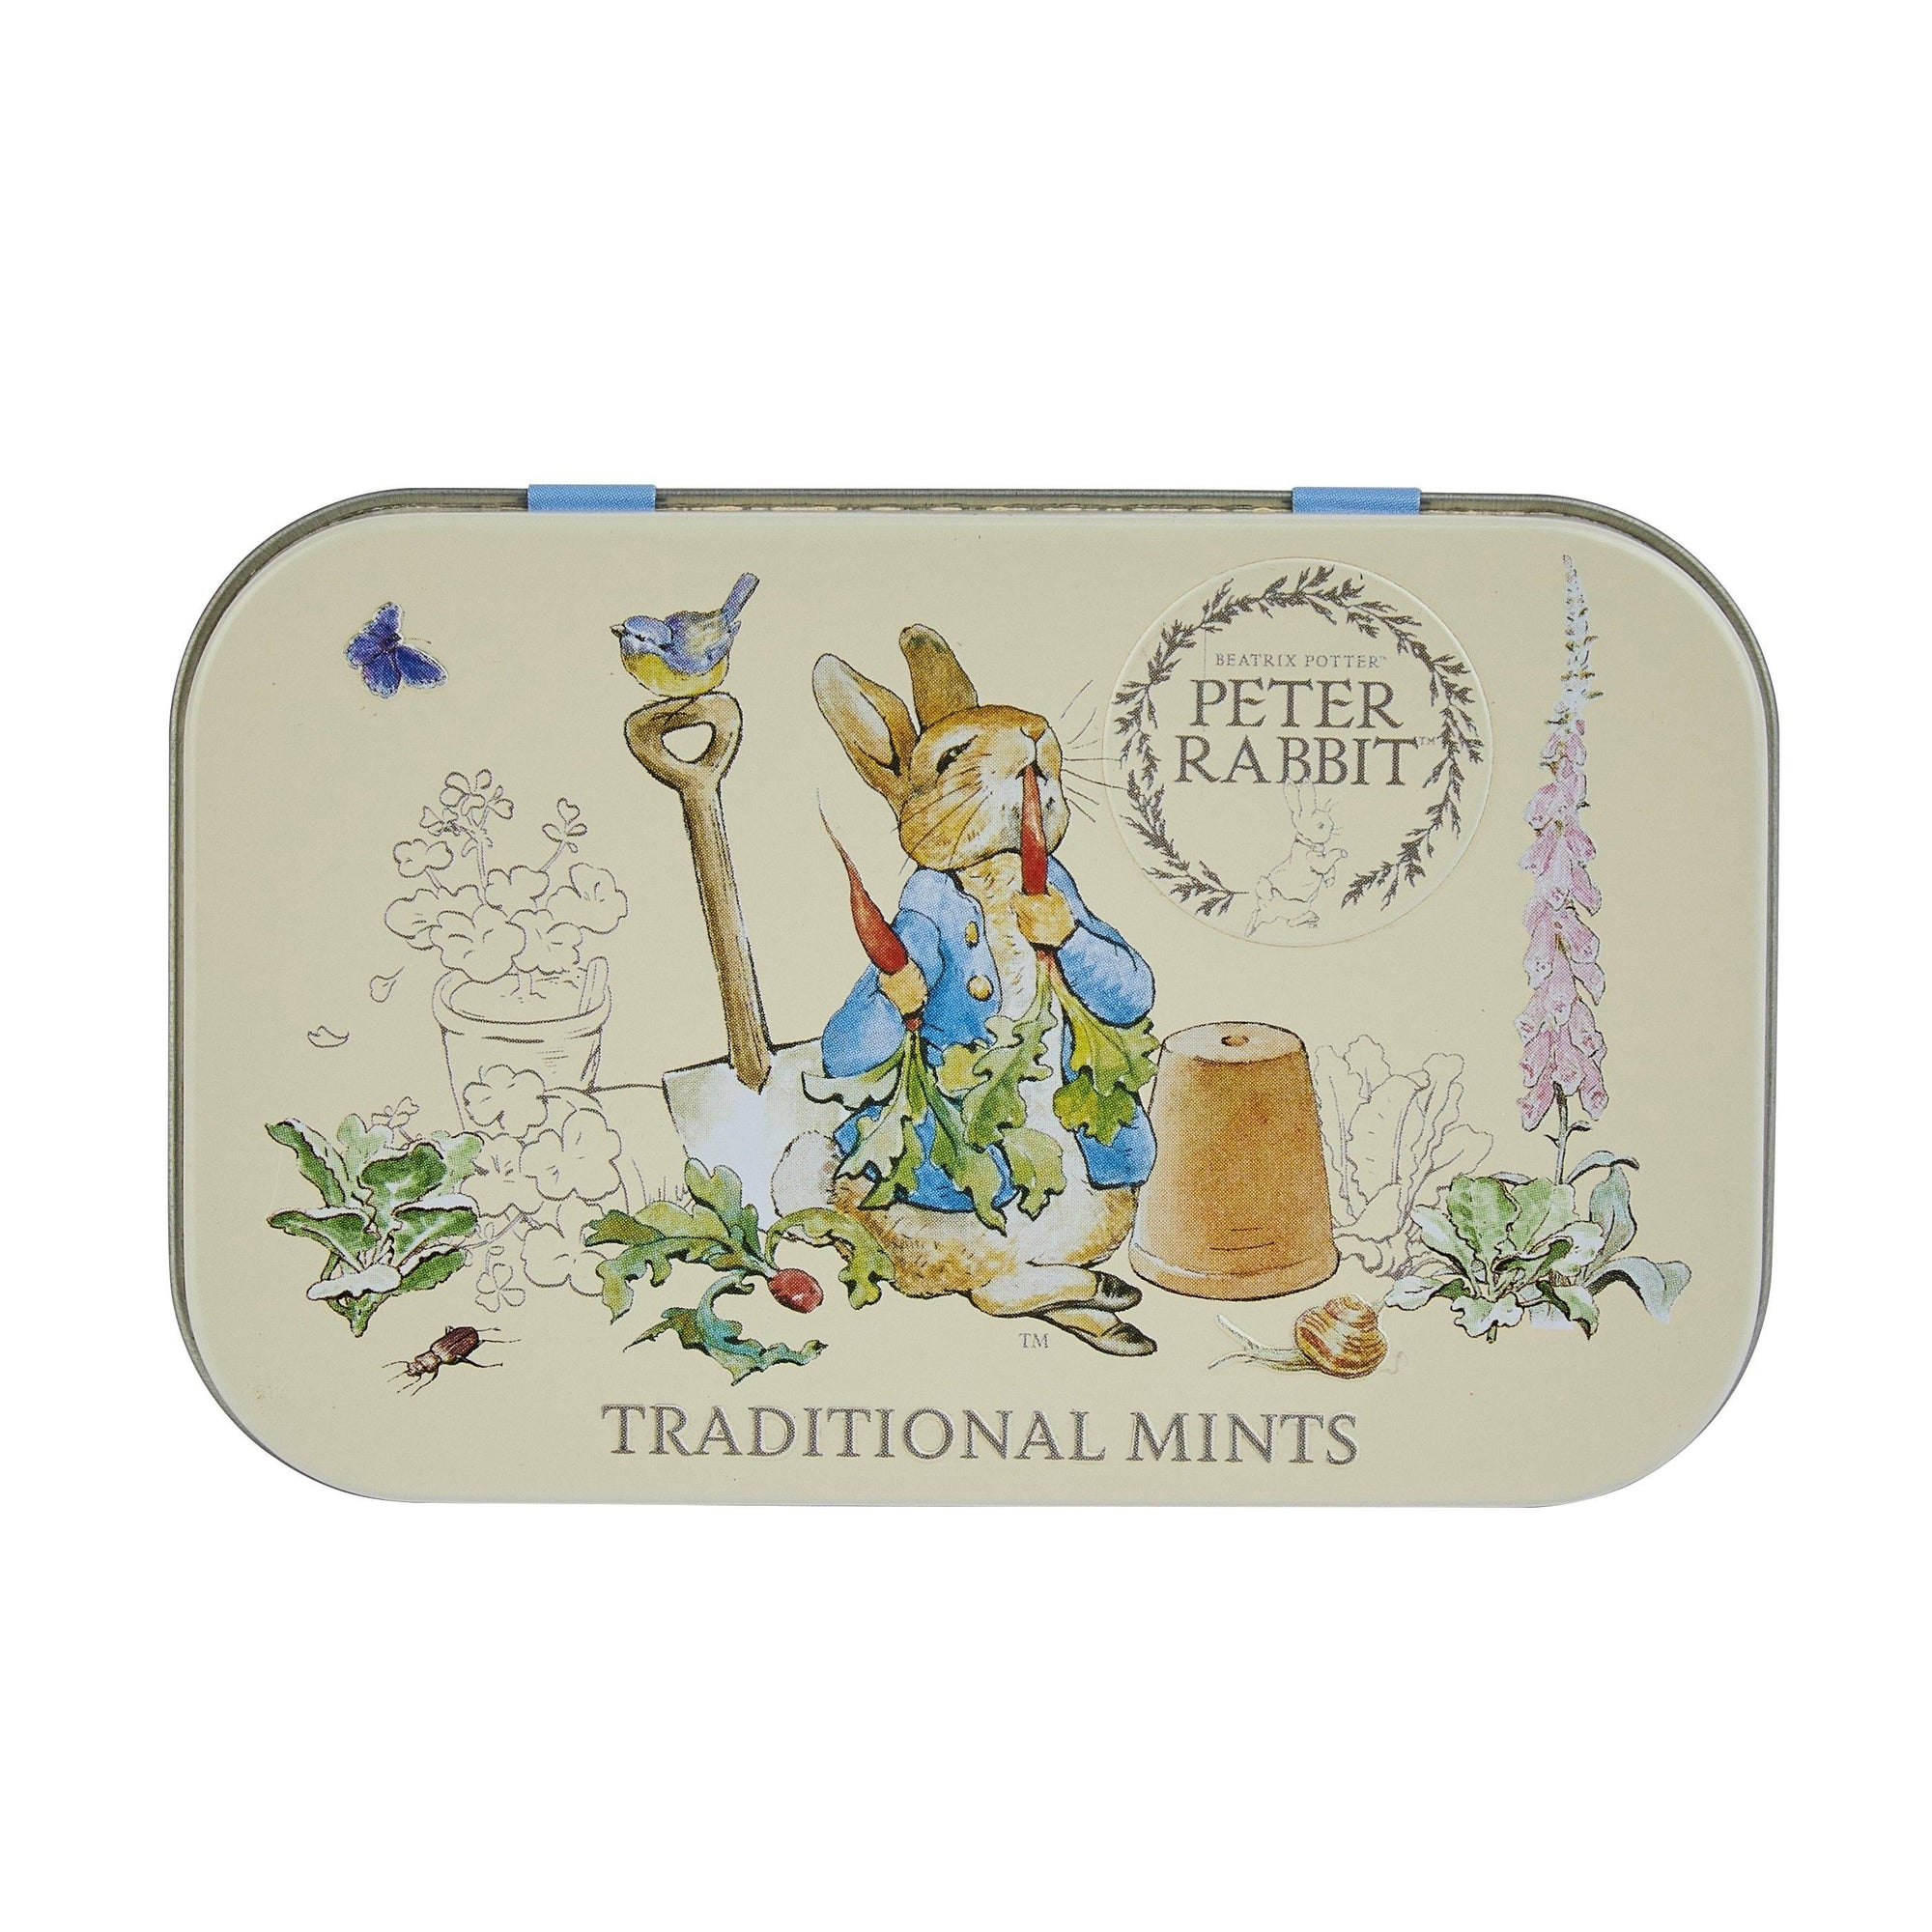 Beatrix Potter Sugar Free Pocket Mints Tin 35g Mints New English Teas